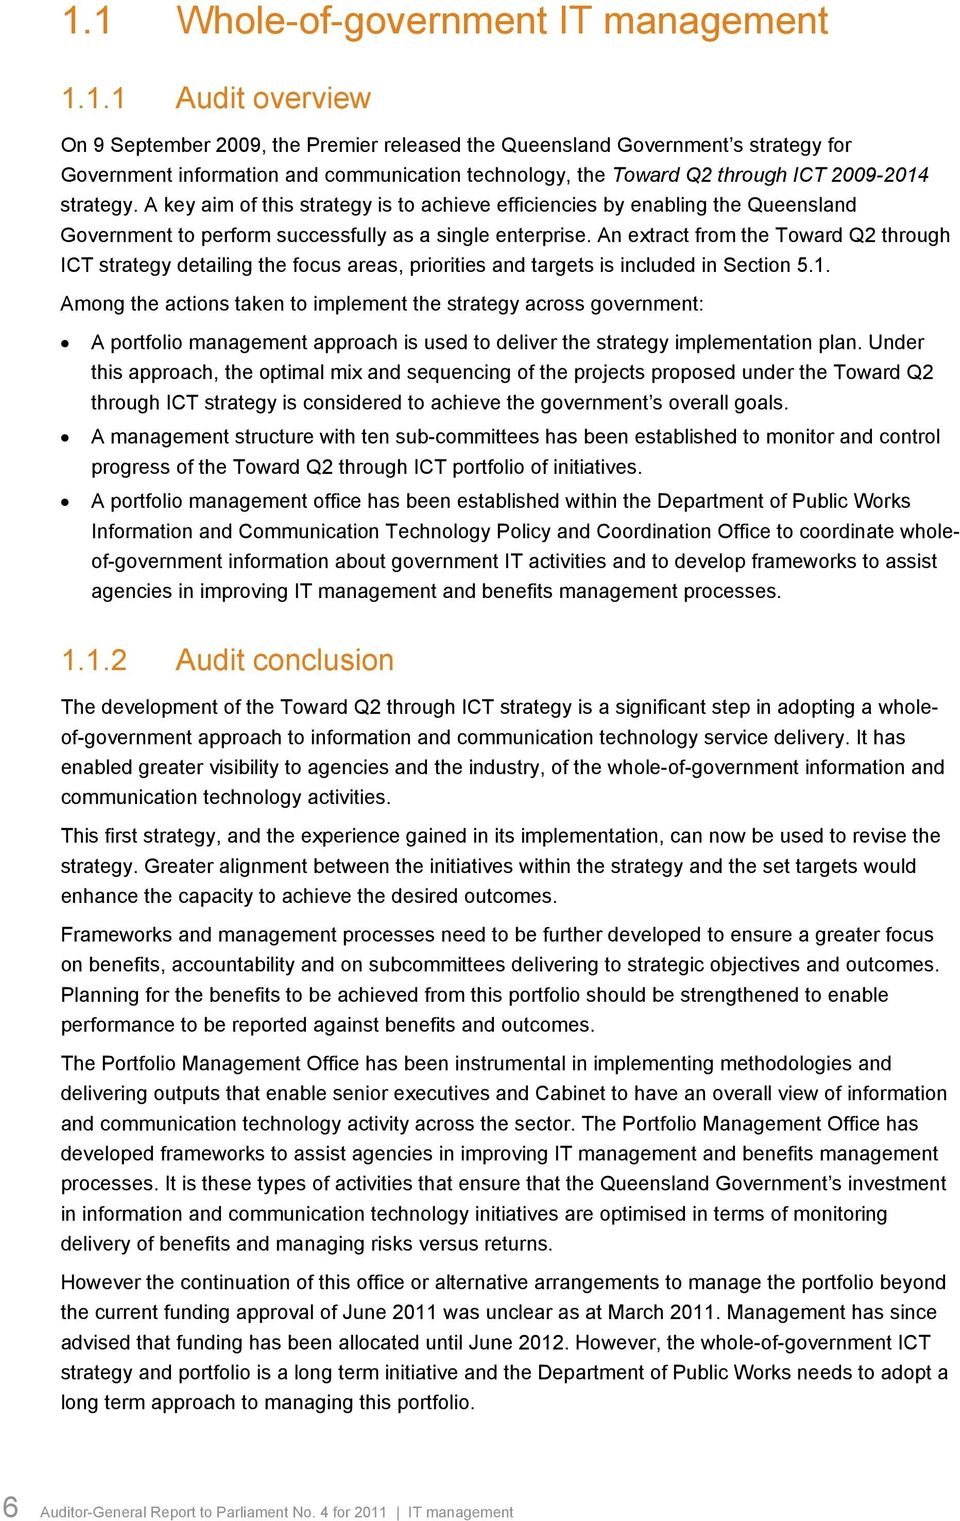 An extract from the Toward Q2 through ICT strategy detailing the focus areas, priorities and targets is included in Section 5.1.